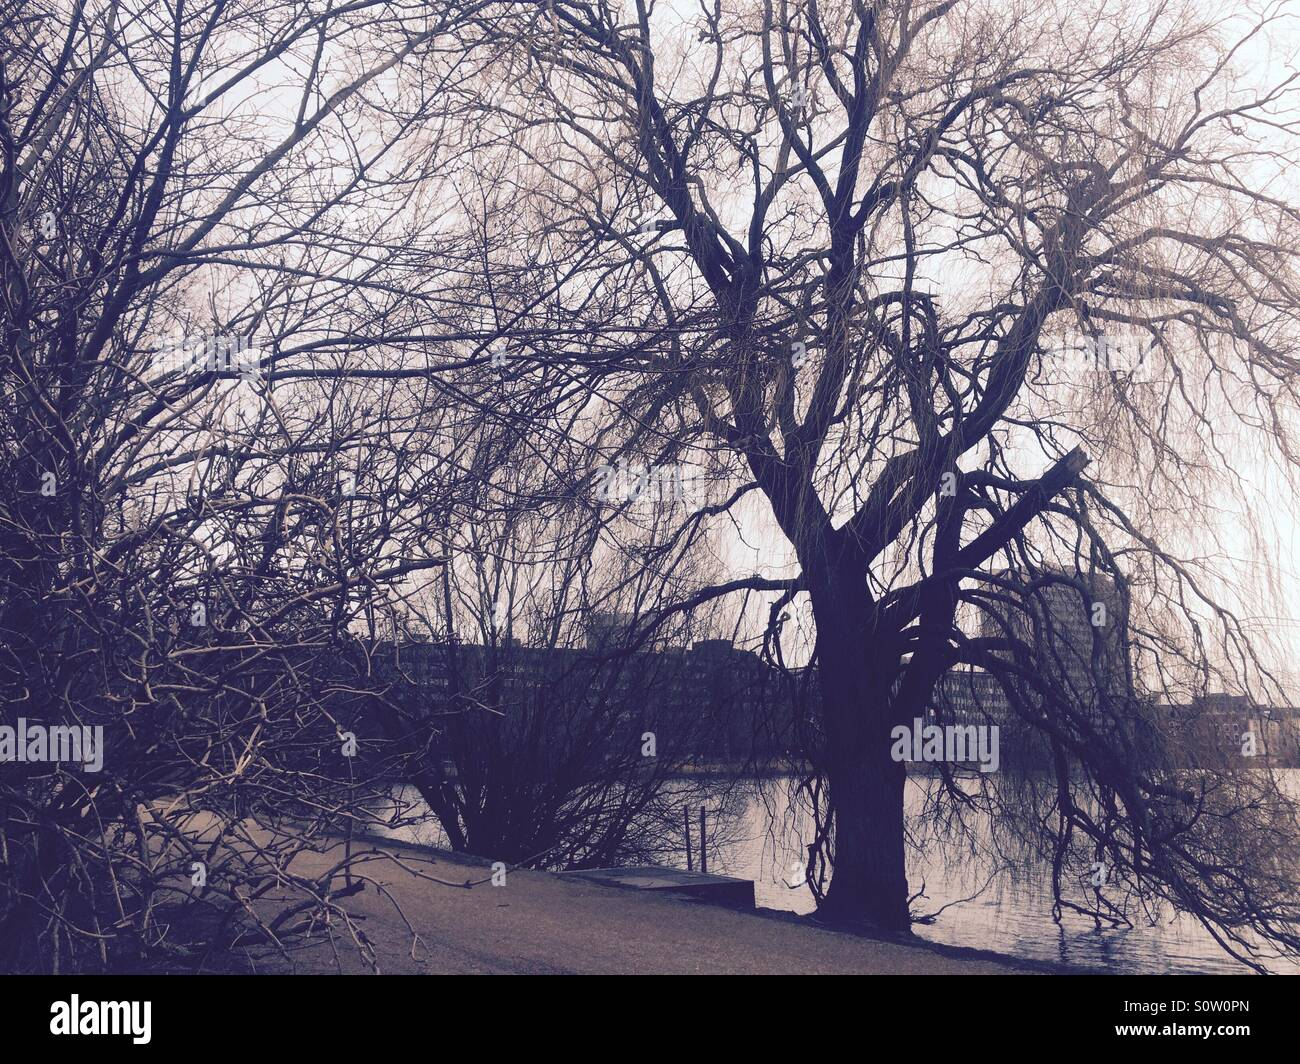 Trees, a bicycle path and a lake in Copenhagen. - Stock Image